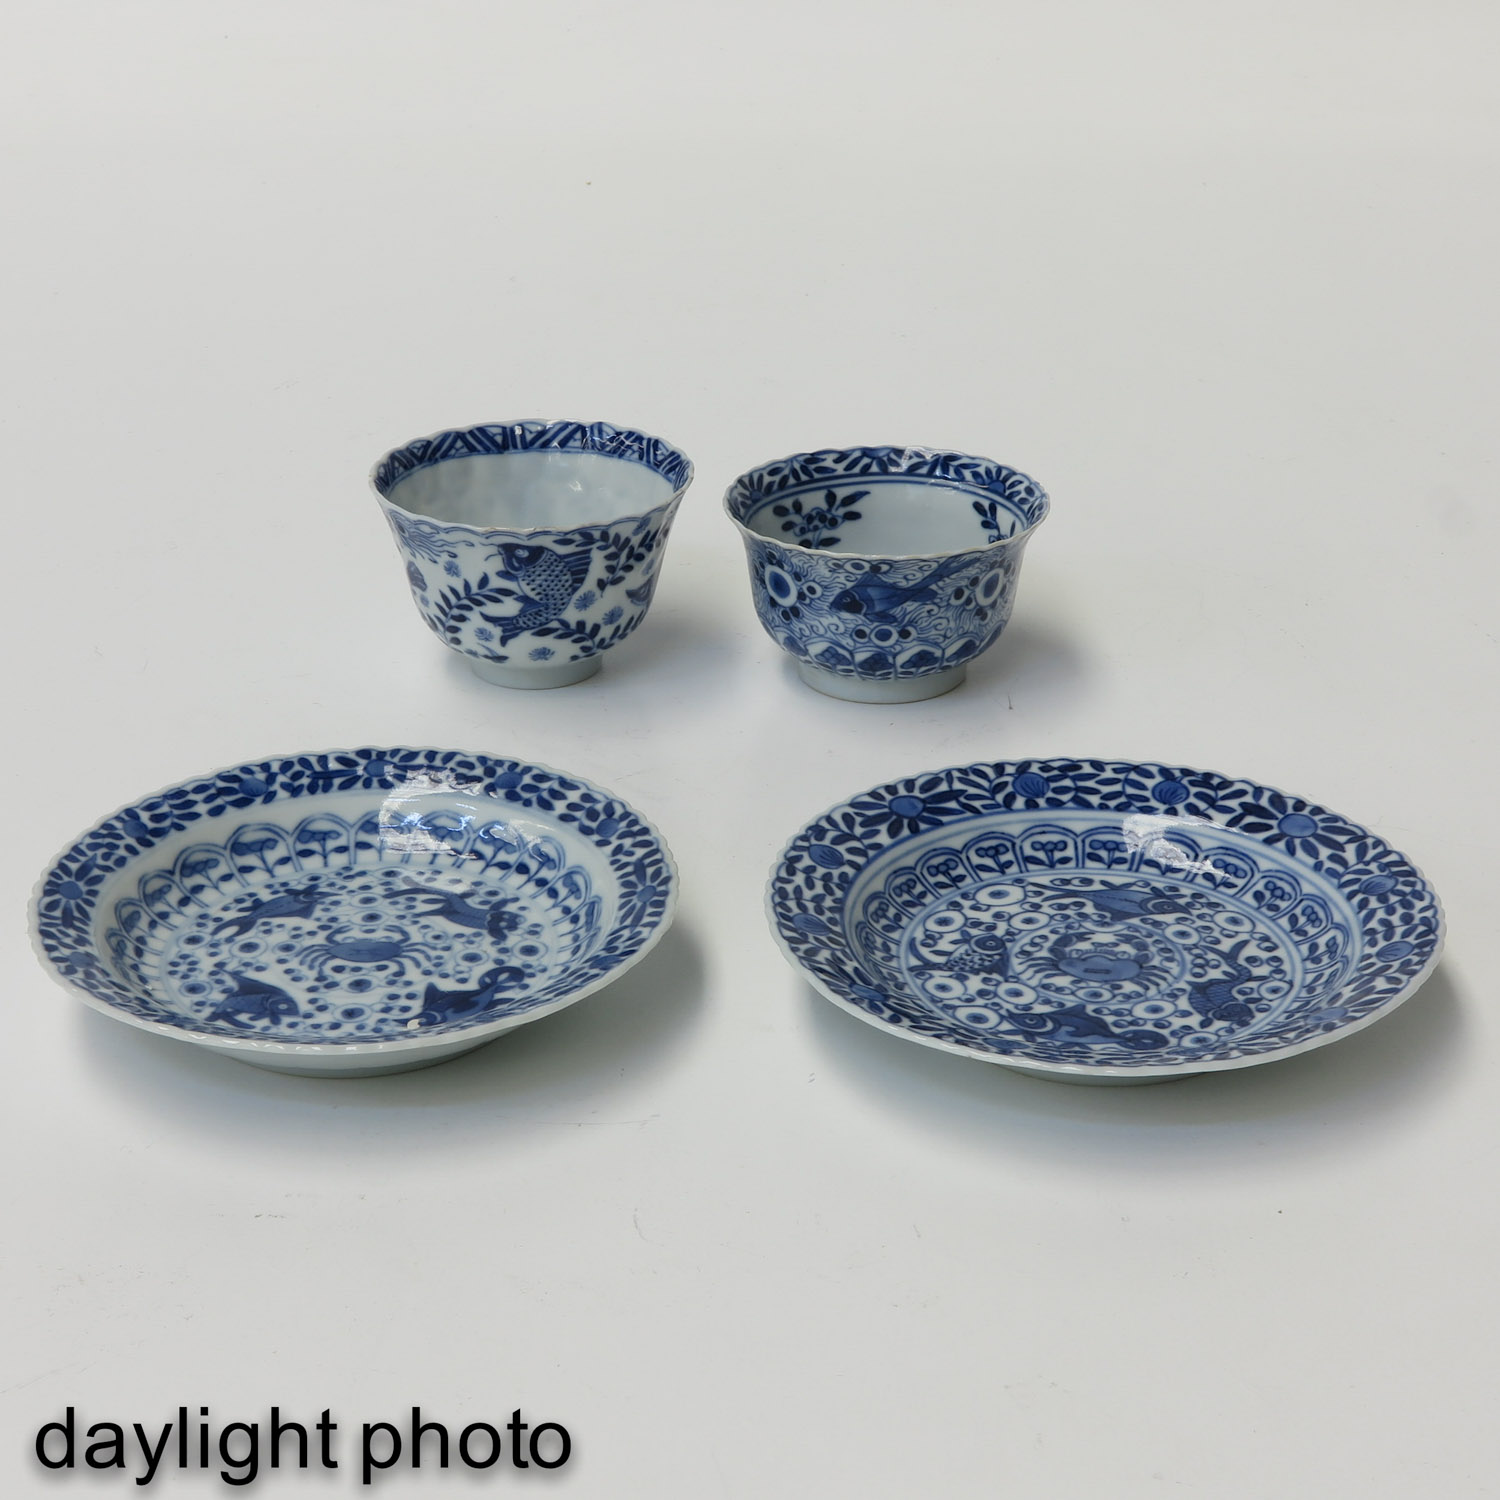 A Series of 12 Cups and Saucers - Image 9 of 10